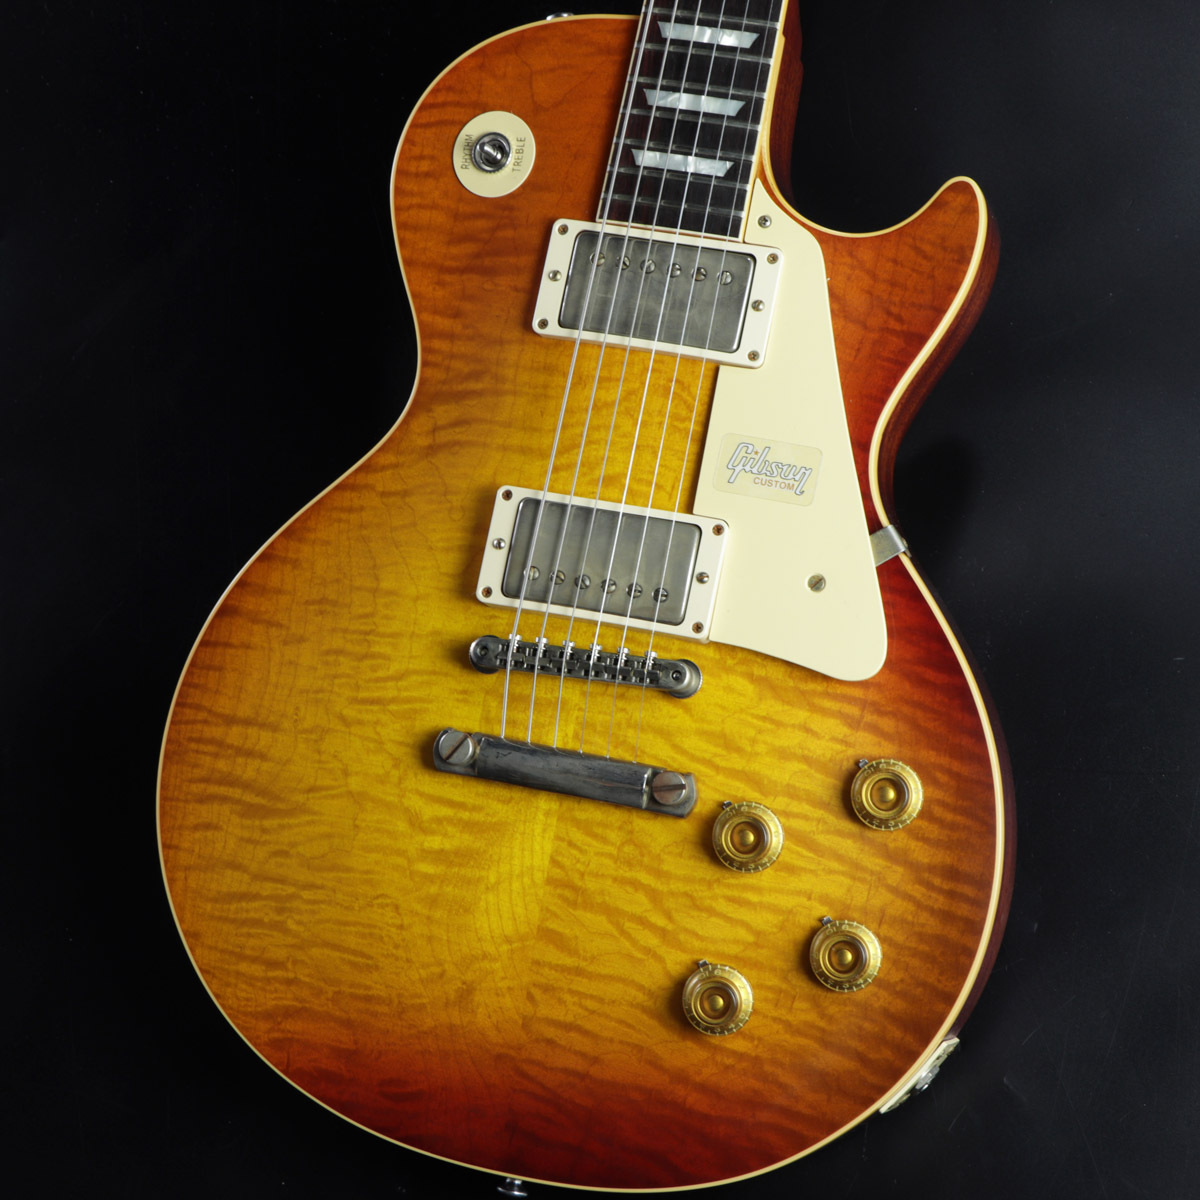 Gibson Custom Shop 石橋楽器店80周年 1959 Les Paul Standard Lightly Aged Rojo Fade/#10【S/N 9 1484#10】